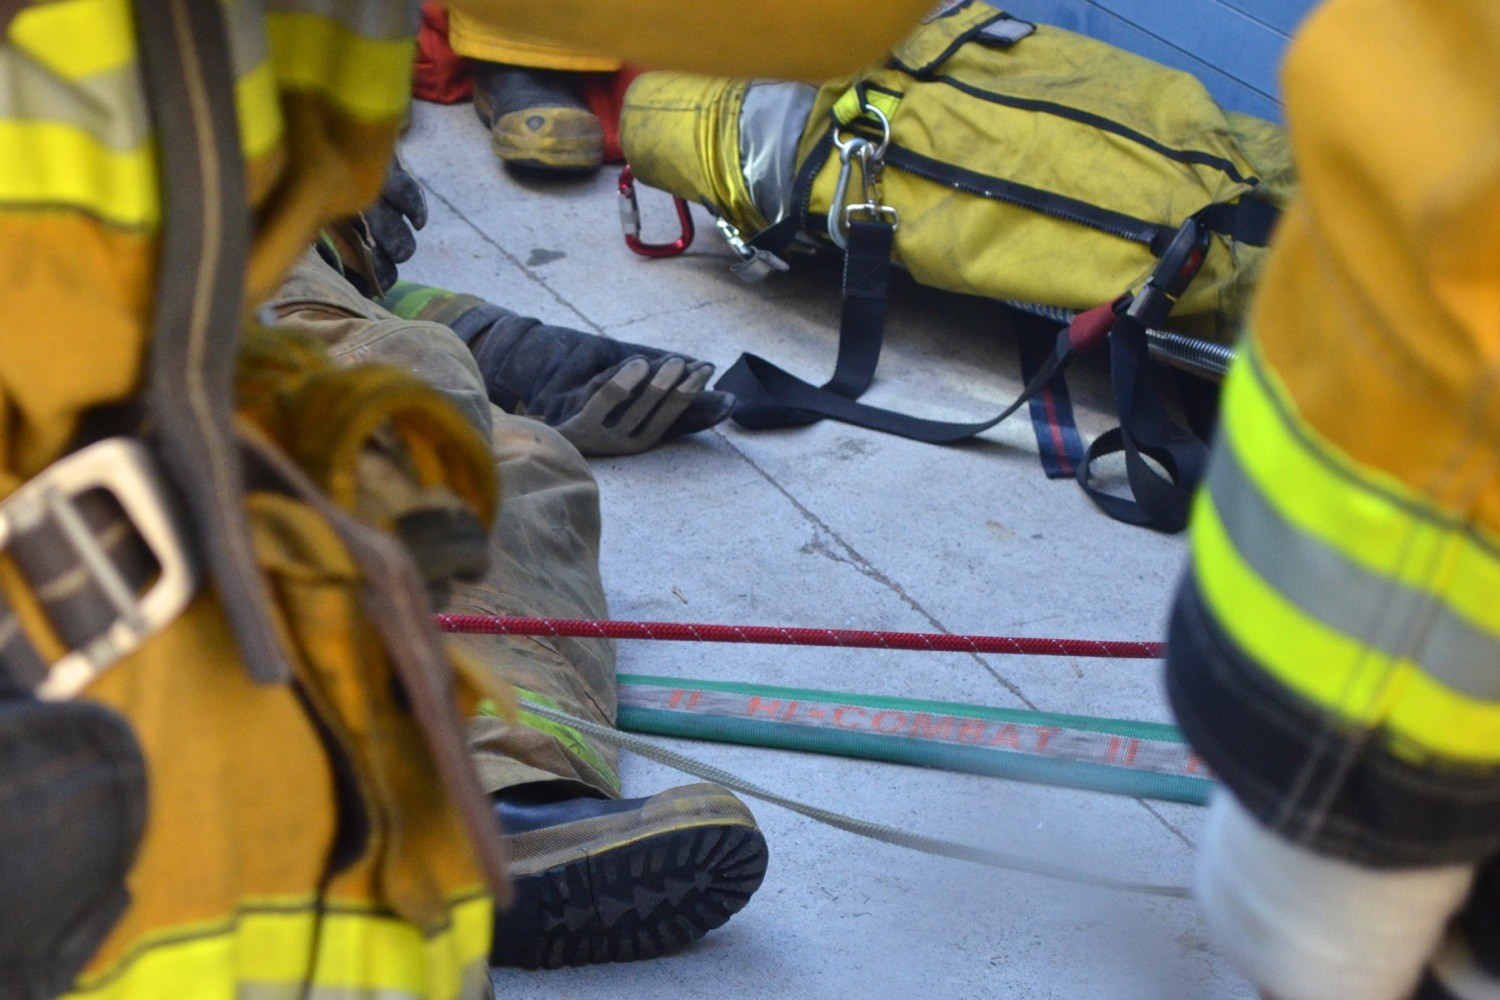 A firefighter pretends to be injured during a drill designed to allow Rapid Intervention Crews to practice rescuing other firefighters. Photo by Nicole Mooradian.